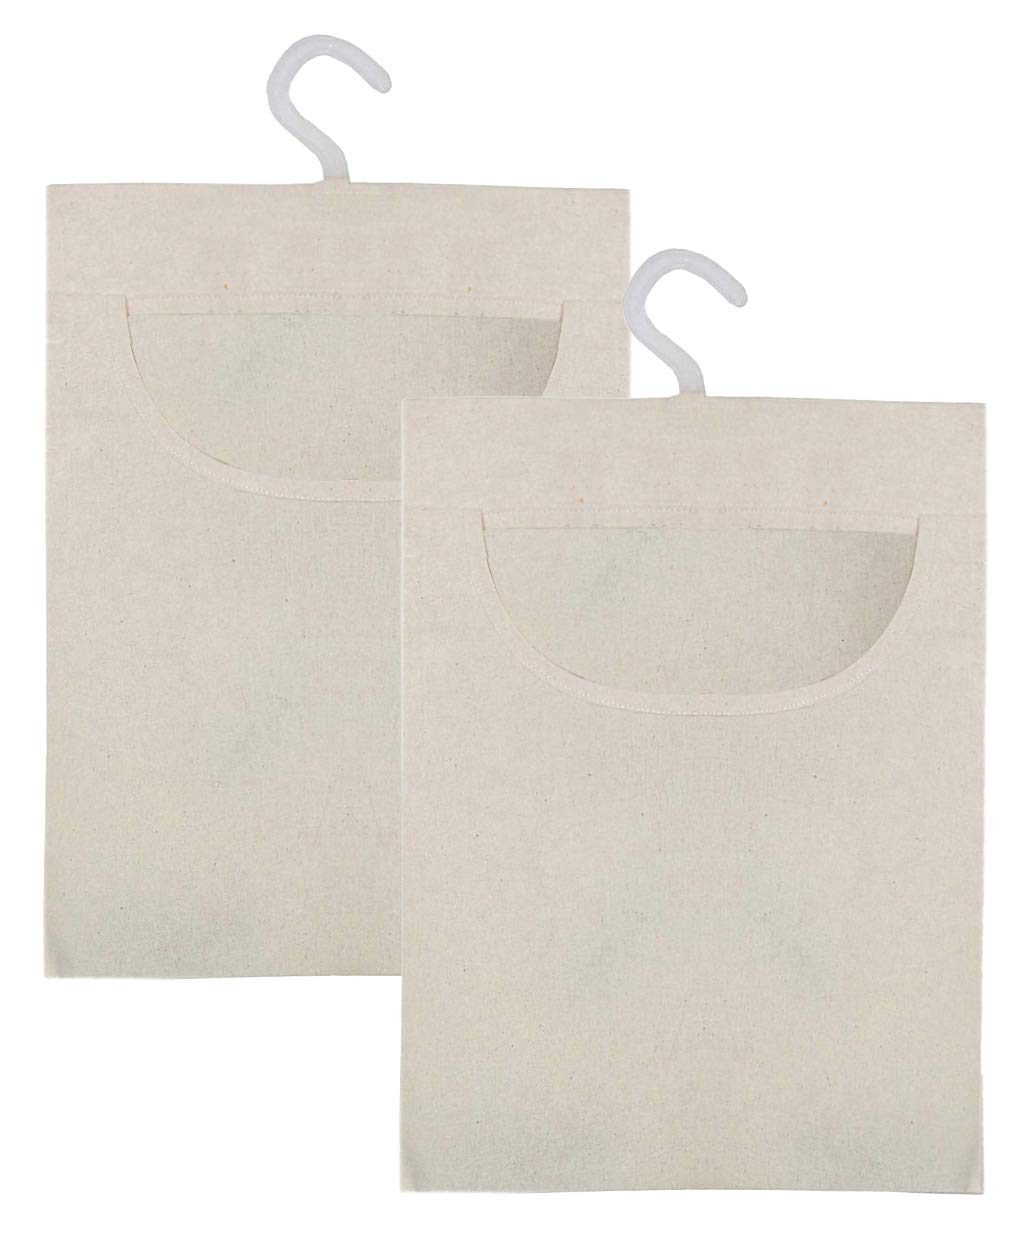 2 Pack Hanging Clothespin Bag Set 10 x 15-100/% Natural Cotton Canvas Cotton Craft